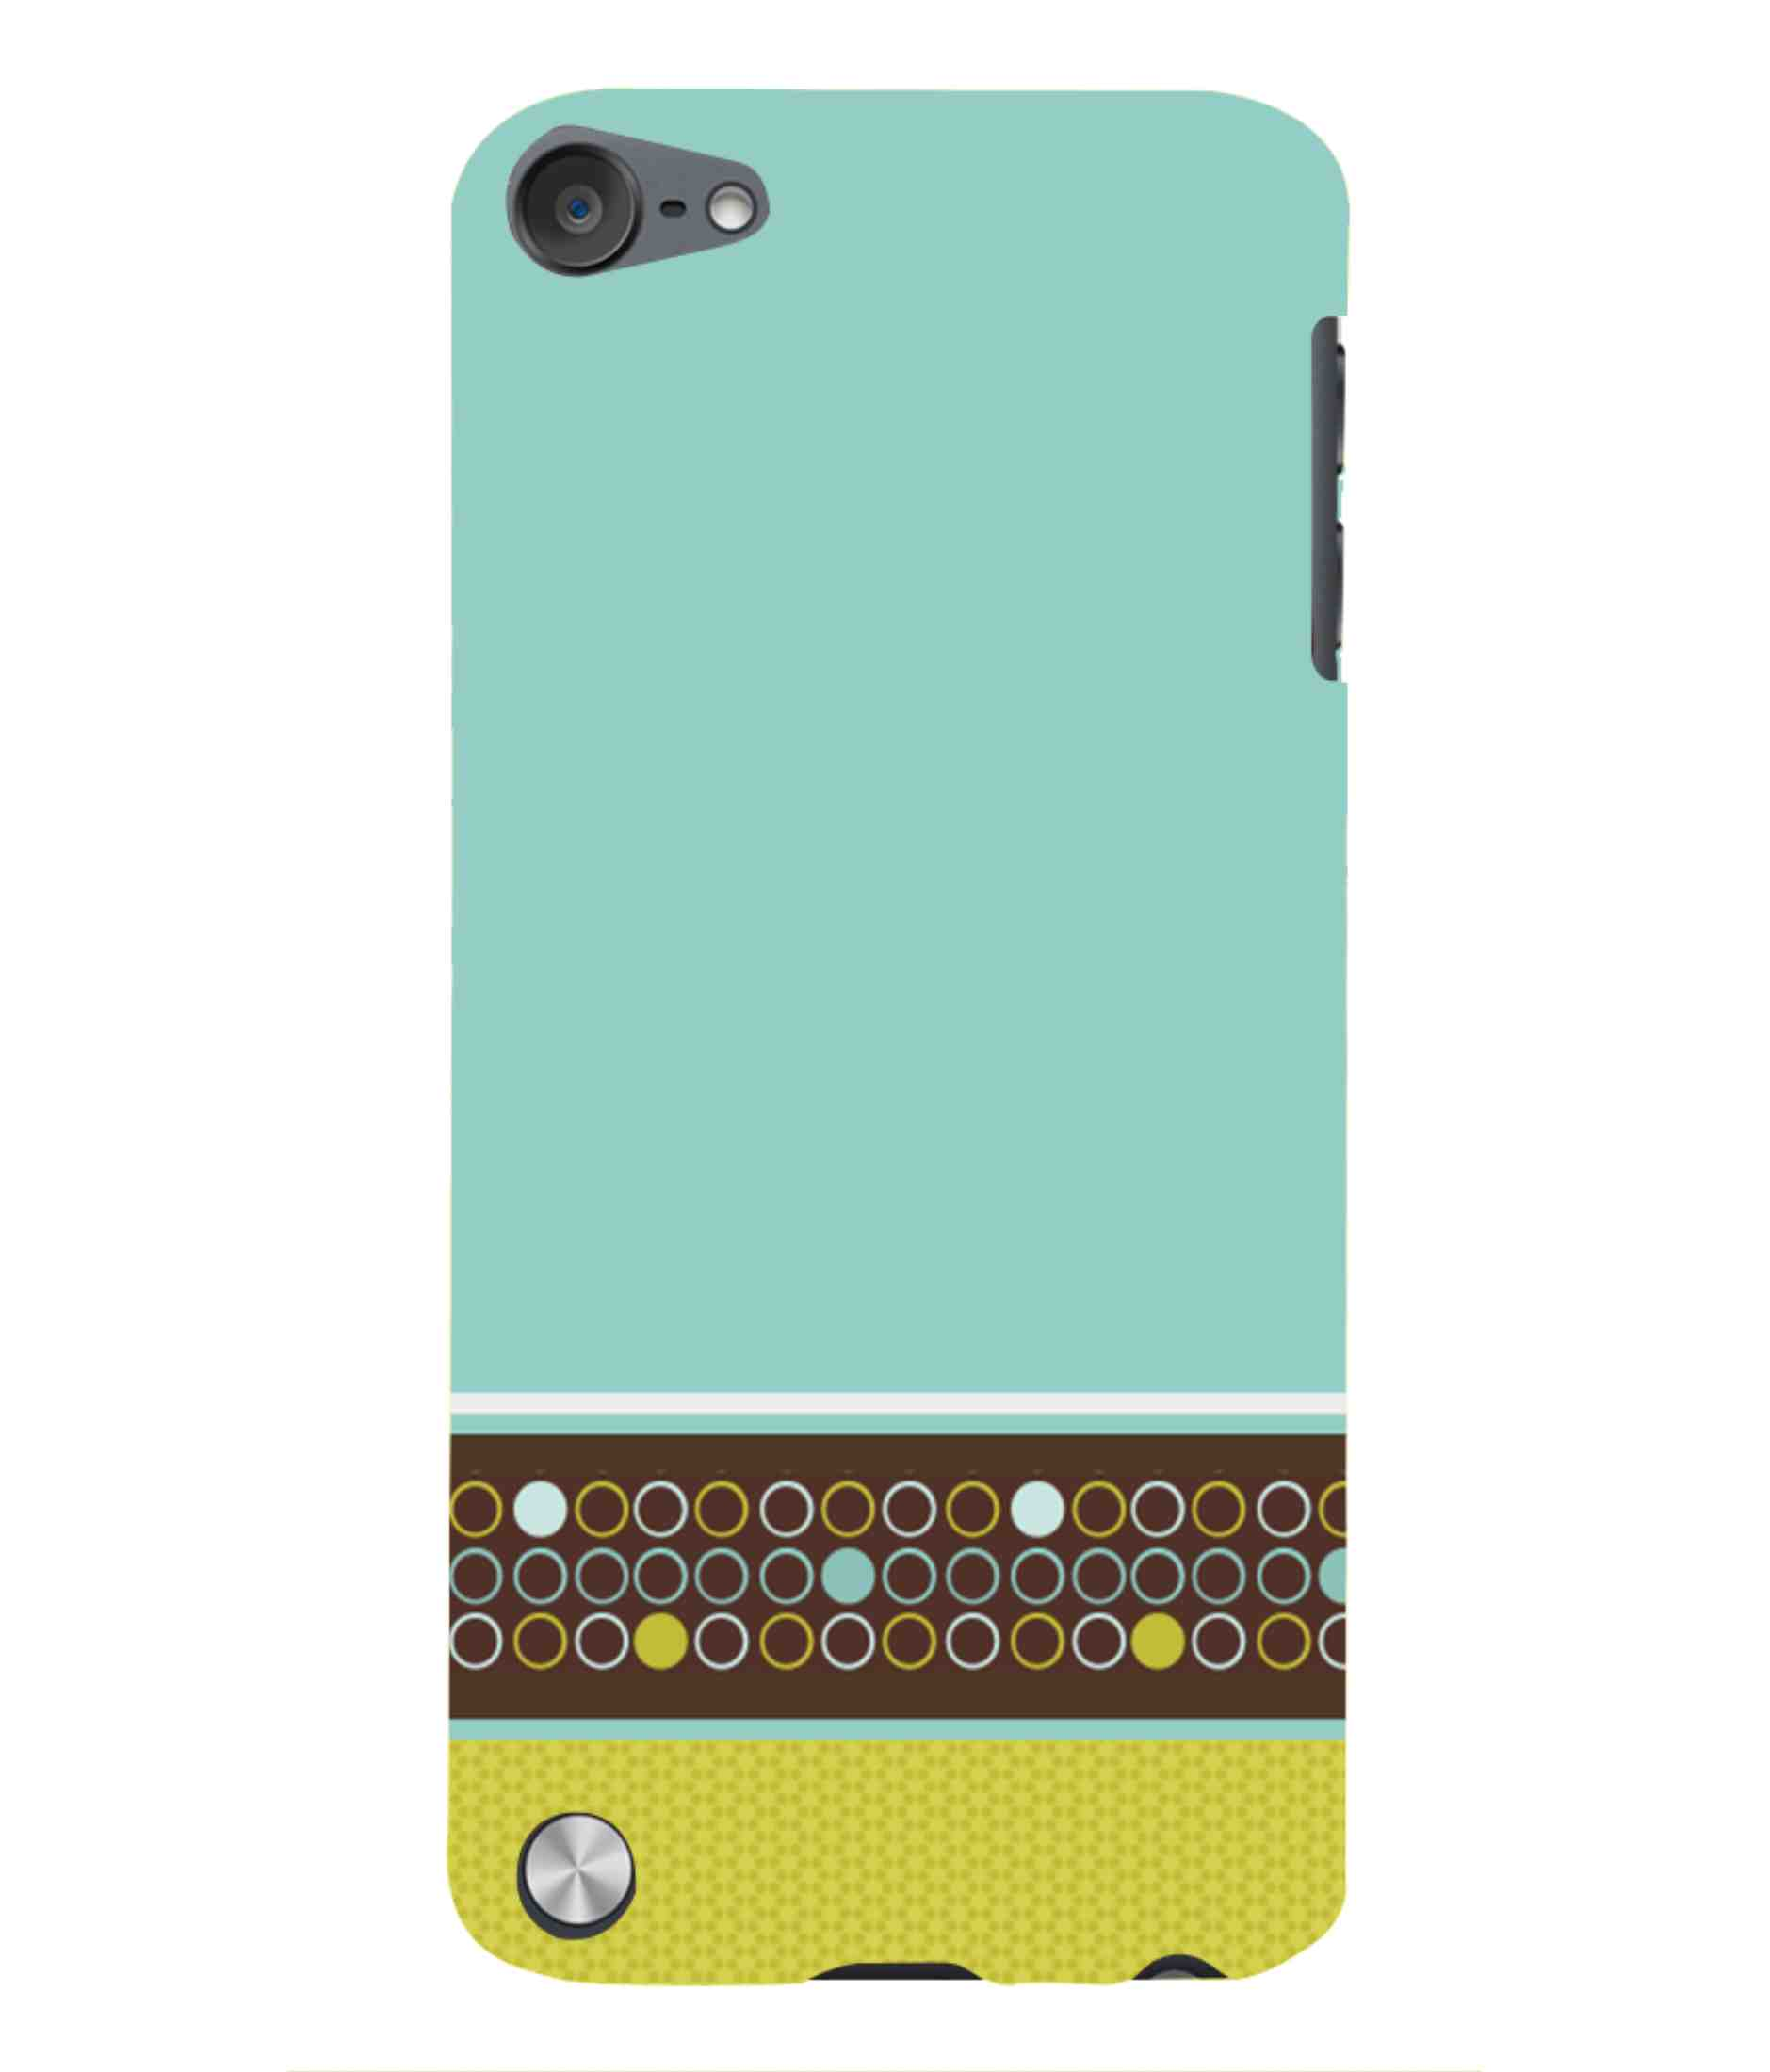 chaploos For Apple Ipod Touch 5 Icon Pattern Printed Cell Phone Cases Cha-ipodtouch5-a080